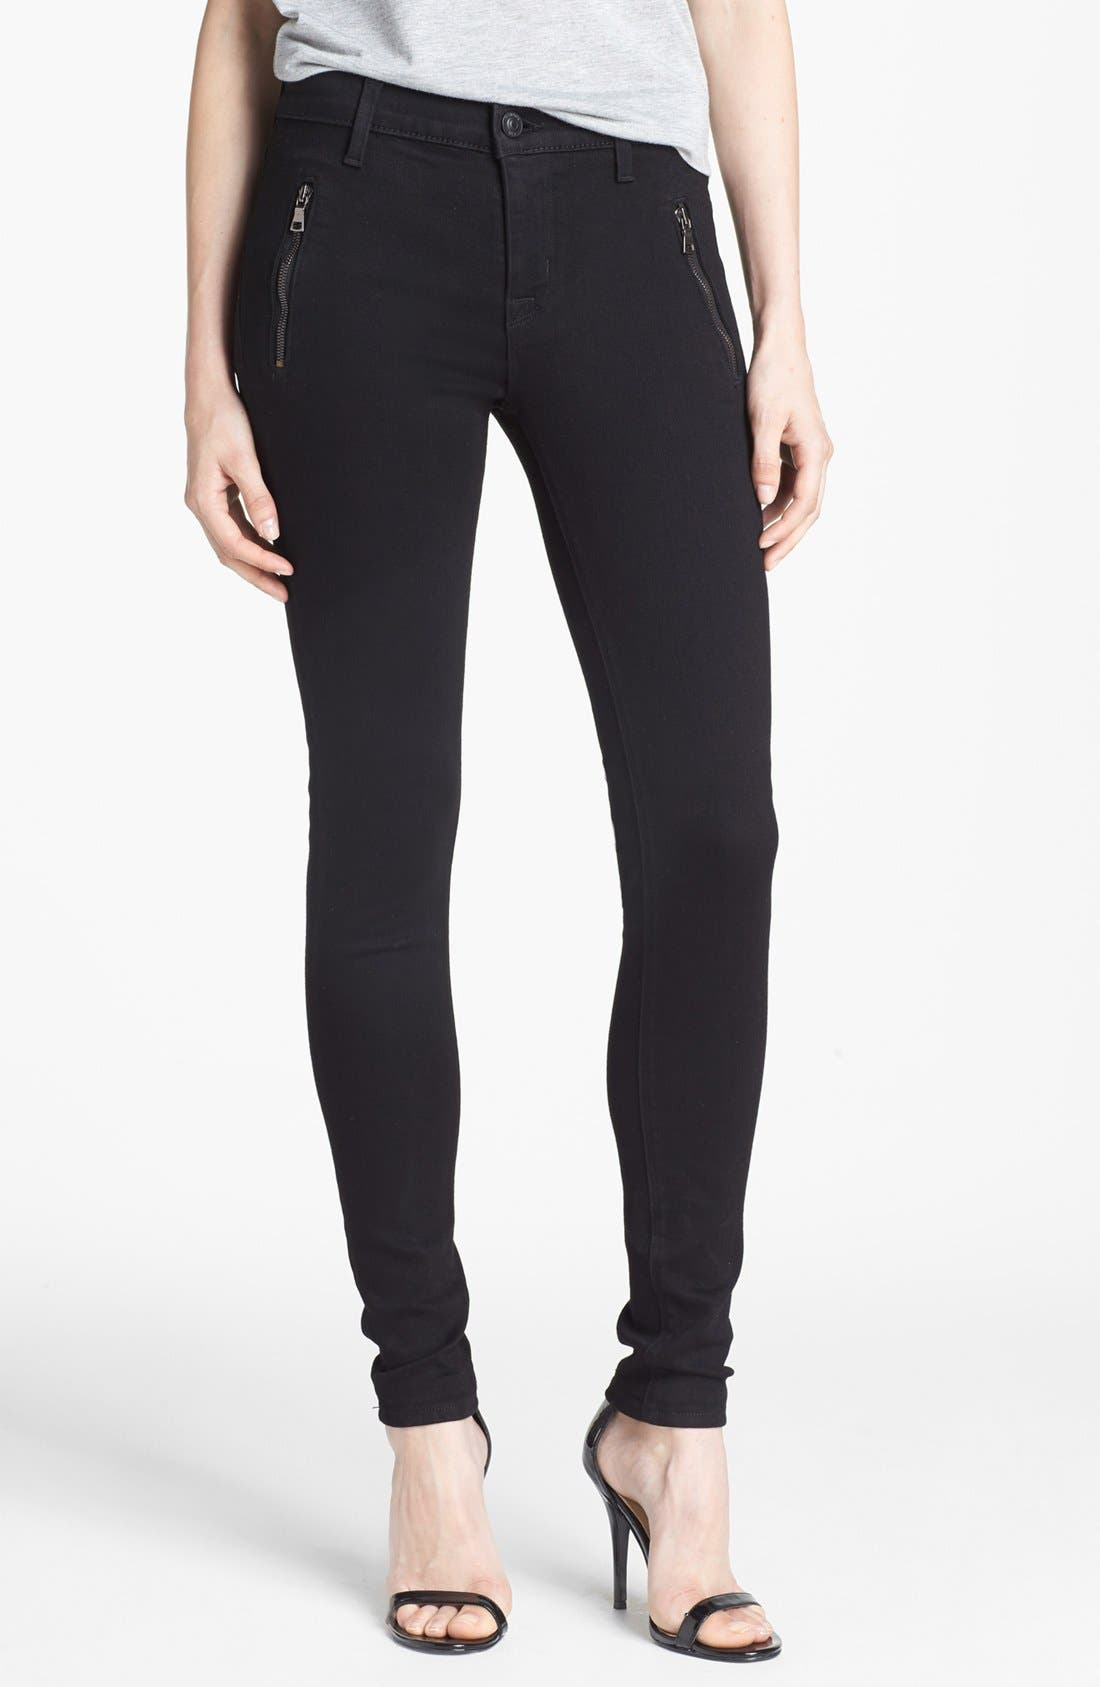 Alternate Image 1 Selected - Hudson Jeans 'Biker' Skinny Jeans (Black)